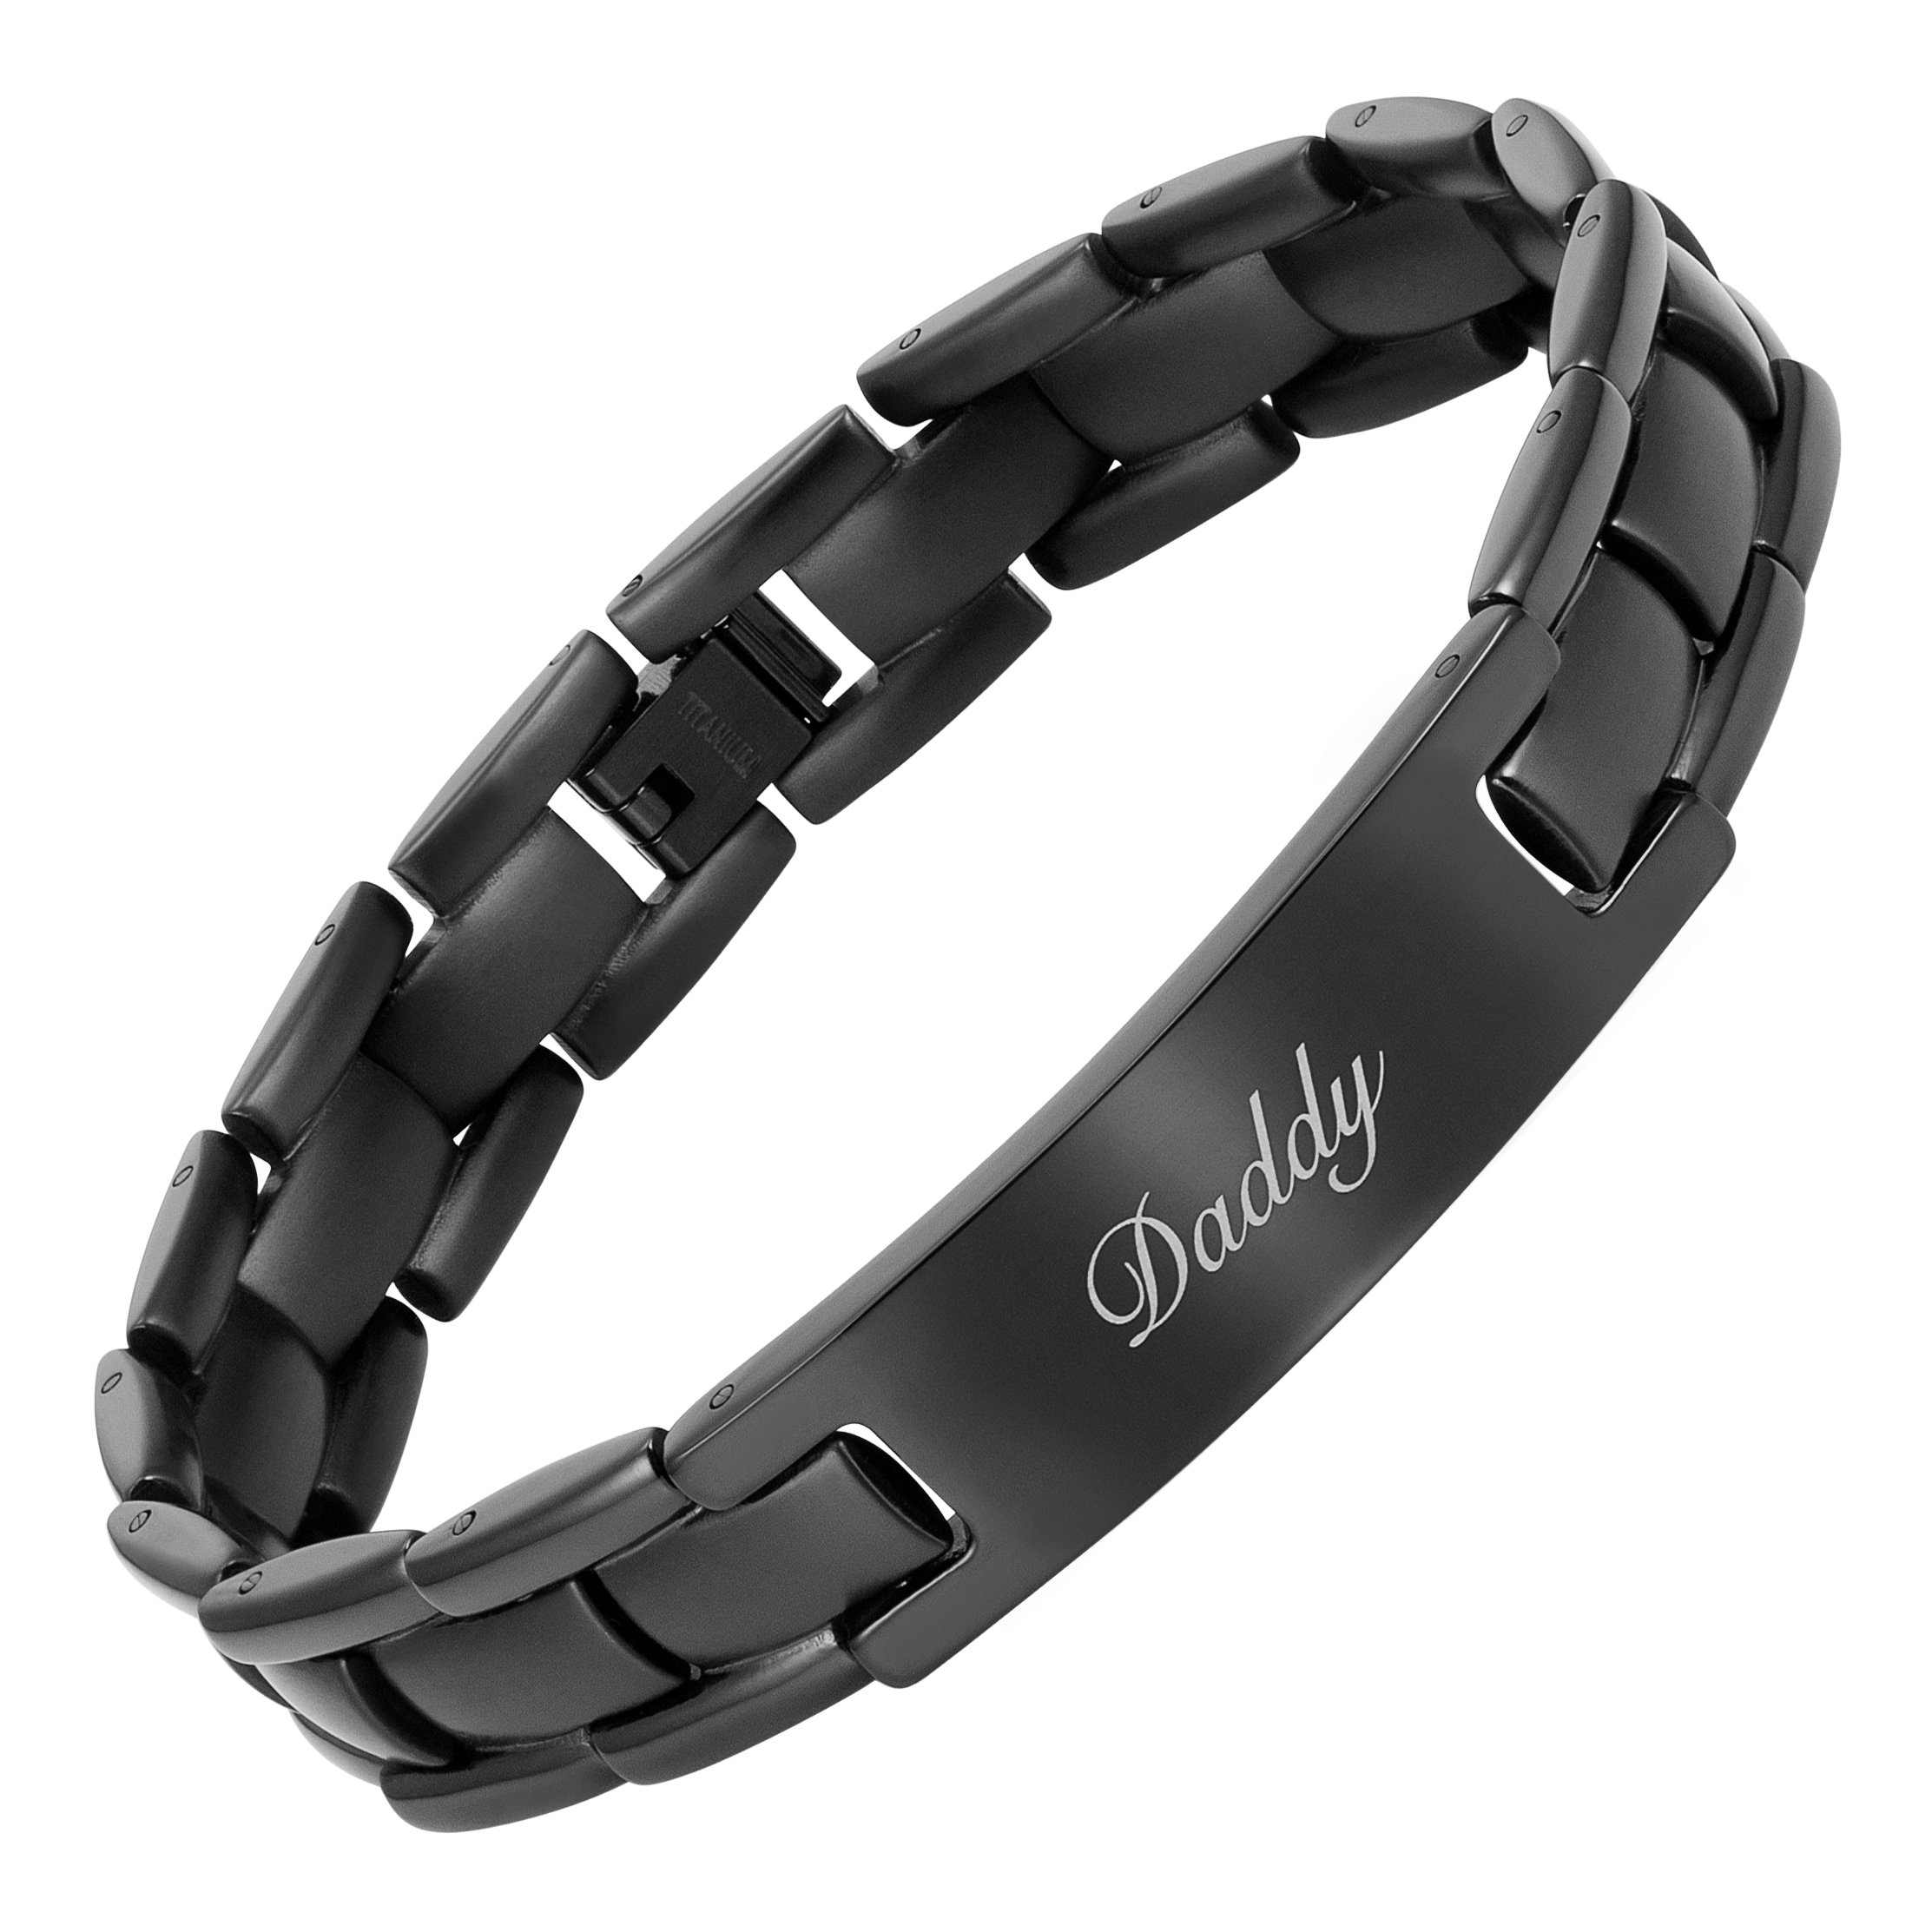 Willis Judd Daddy Titanium Bracelet Engraved Love You Daddy Adjusting Tool & Gift Box Included